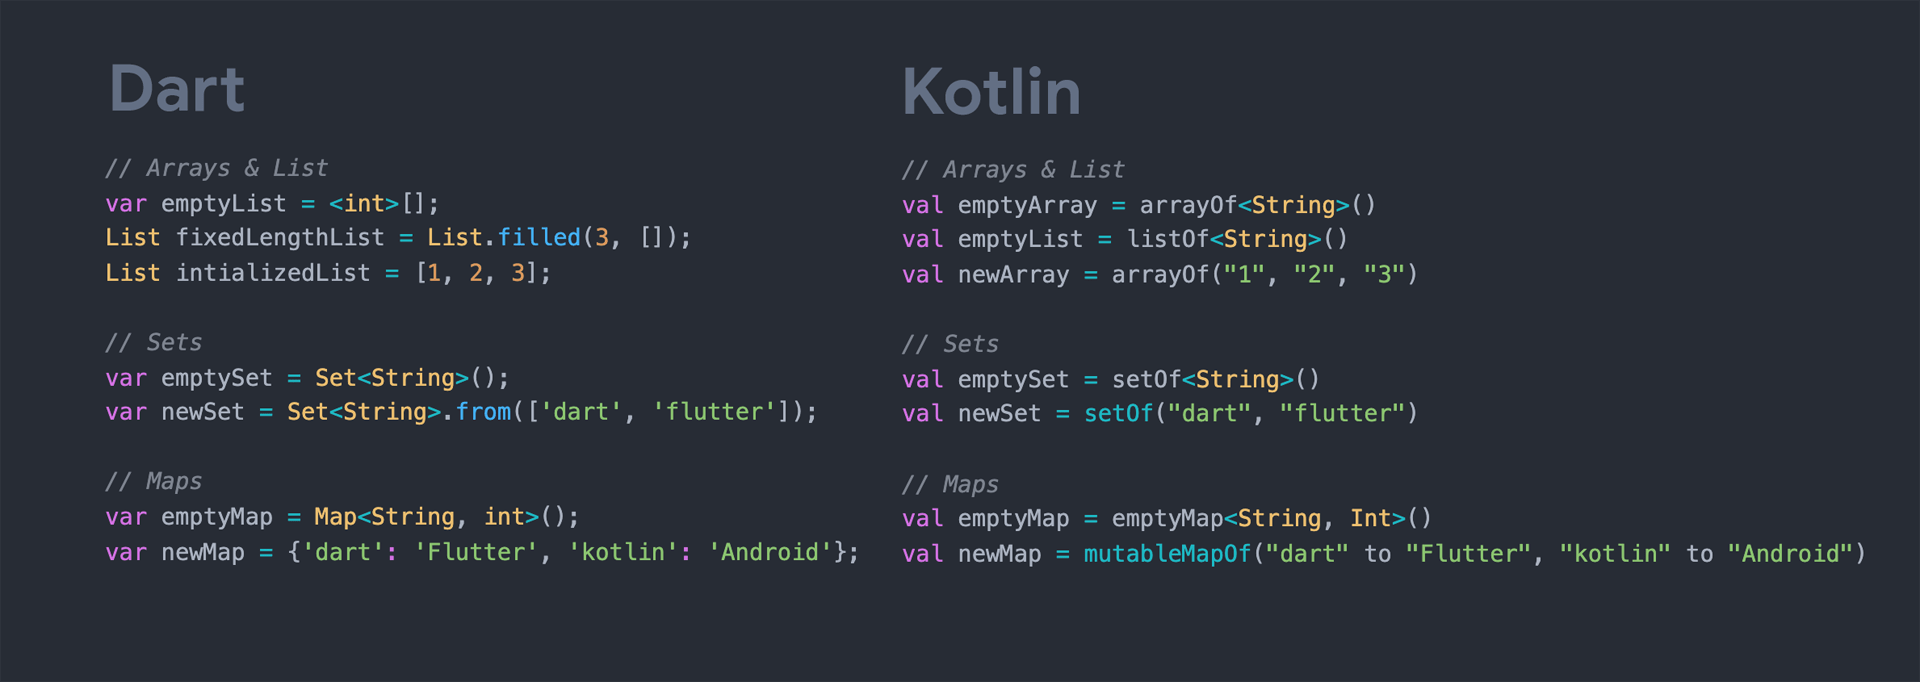 Dart vs Kotlin: Collections